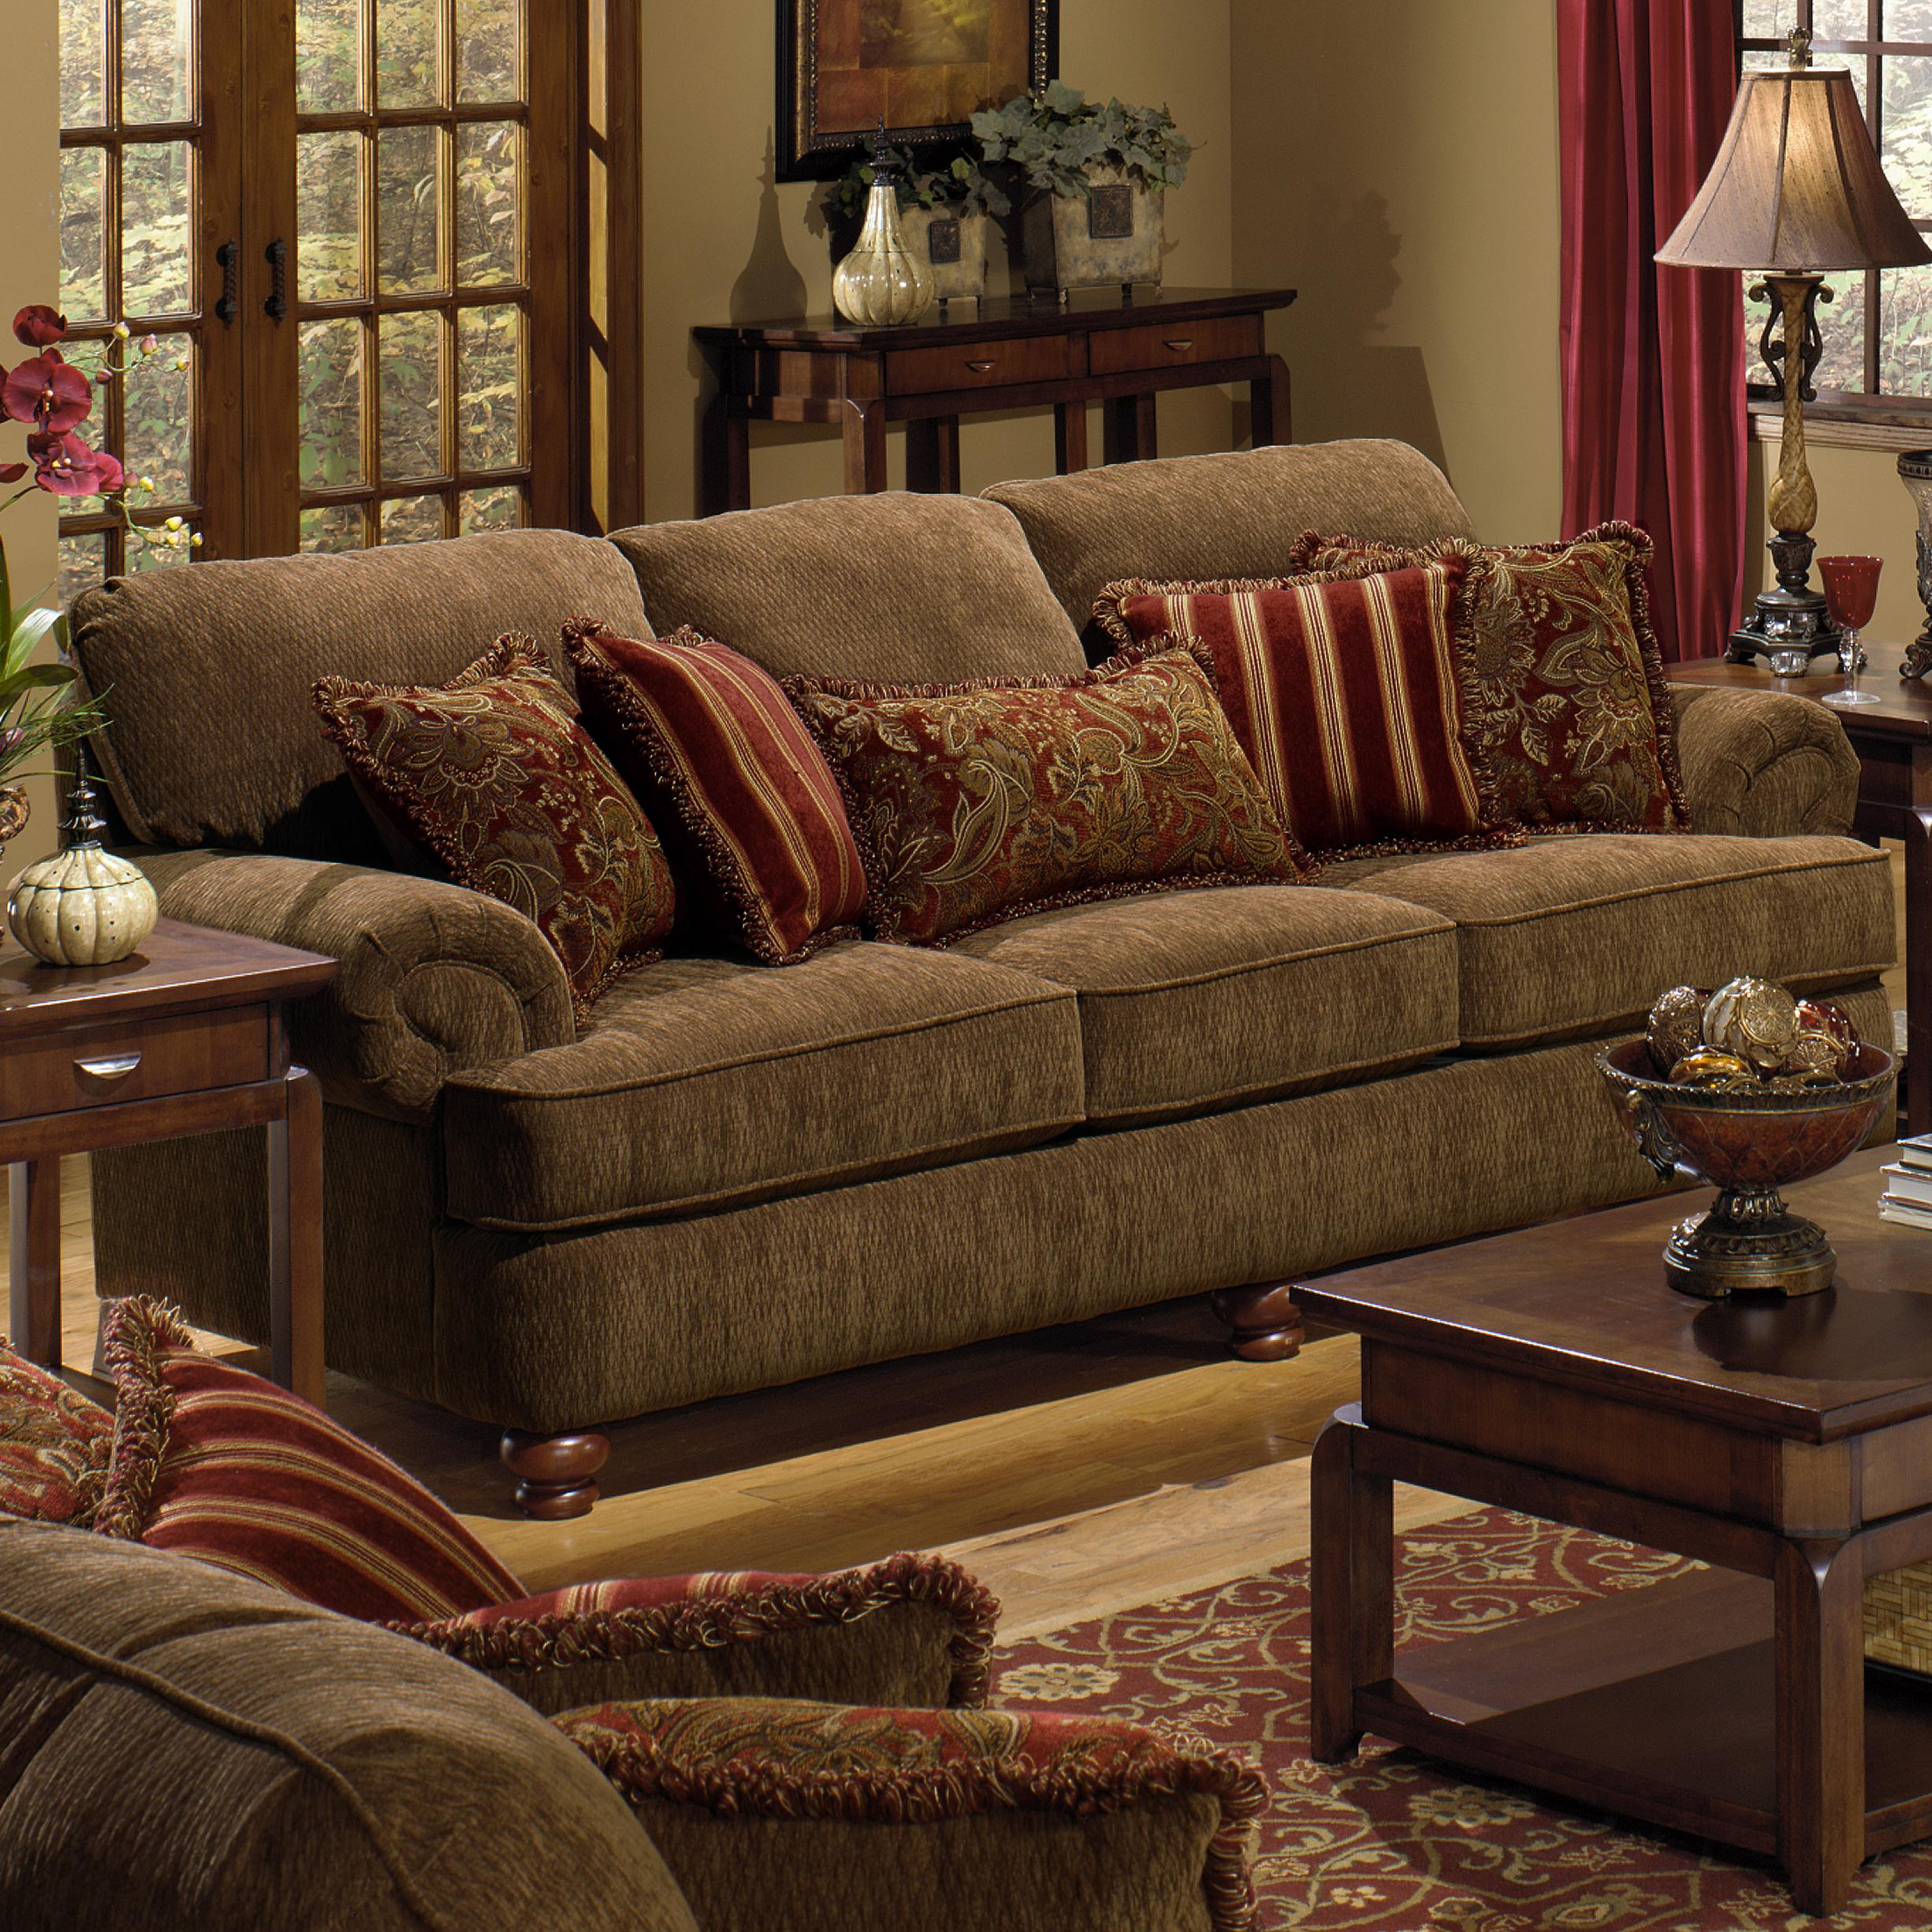 4347 belmont sofa with rolled arms and decorative pillows